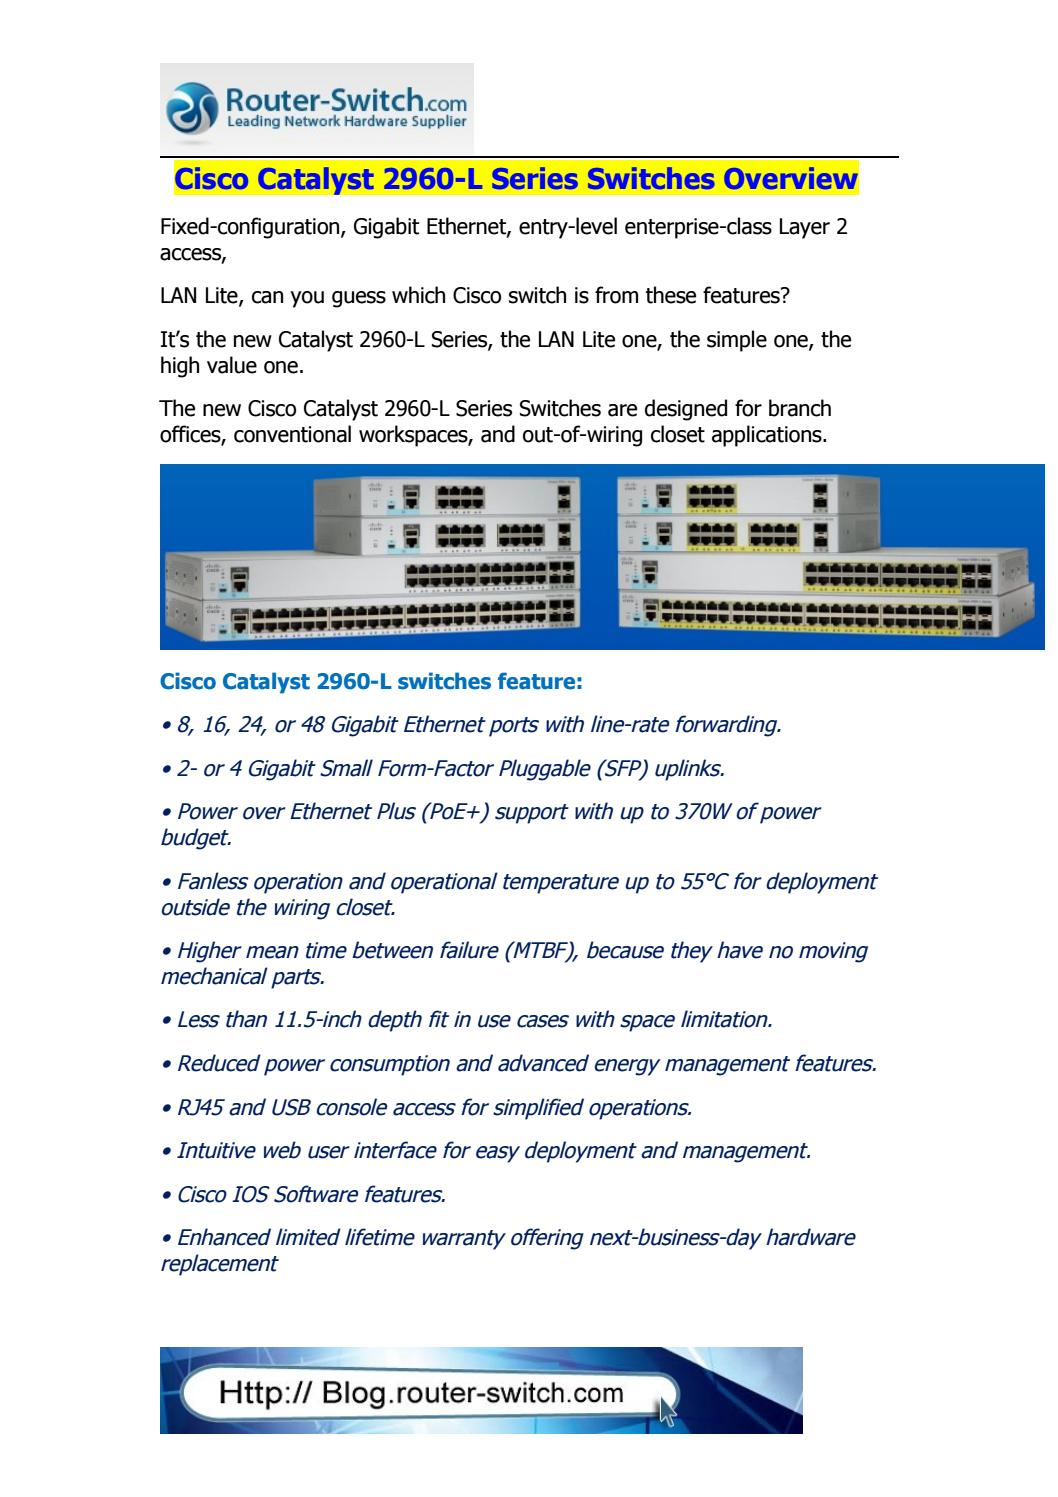 Introducing the new cisco catalyst 2960 l series switches by Router ...